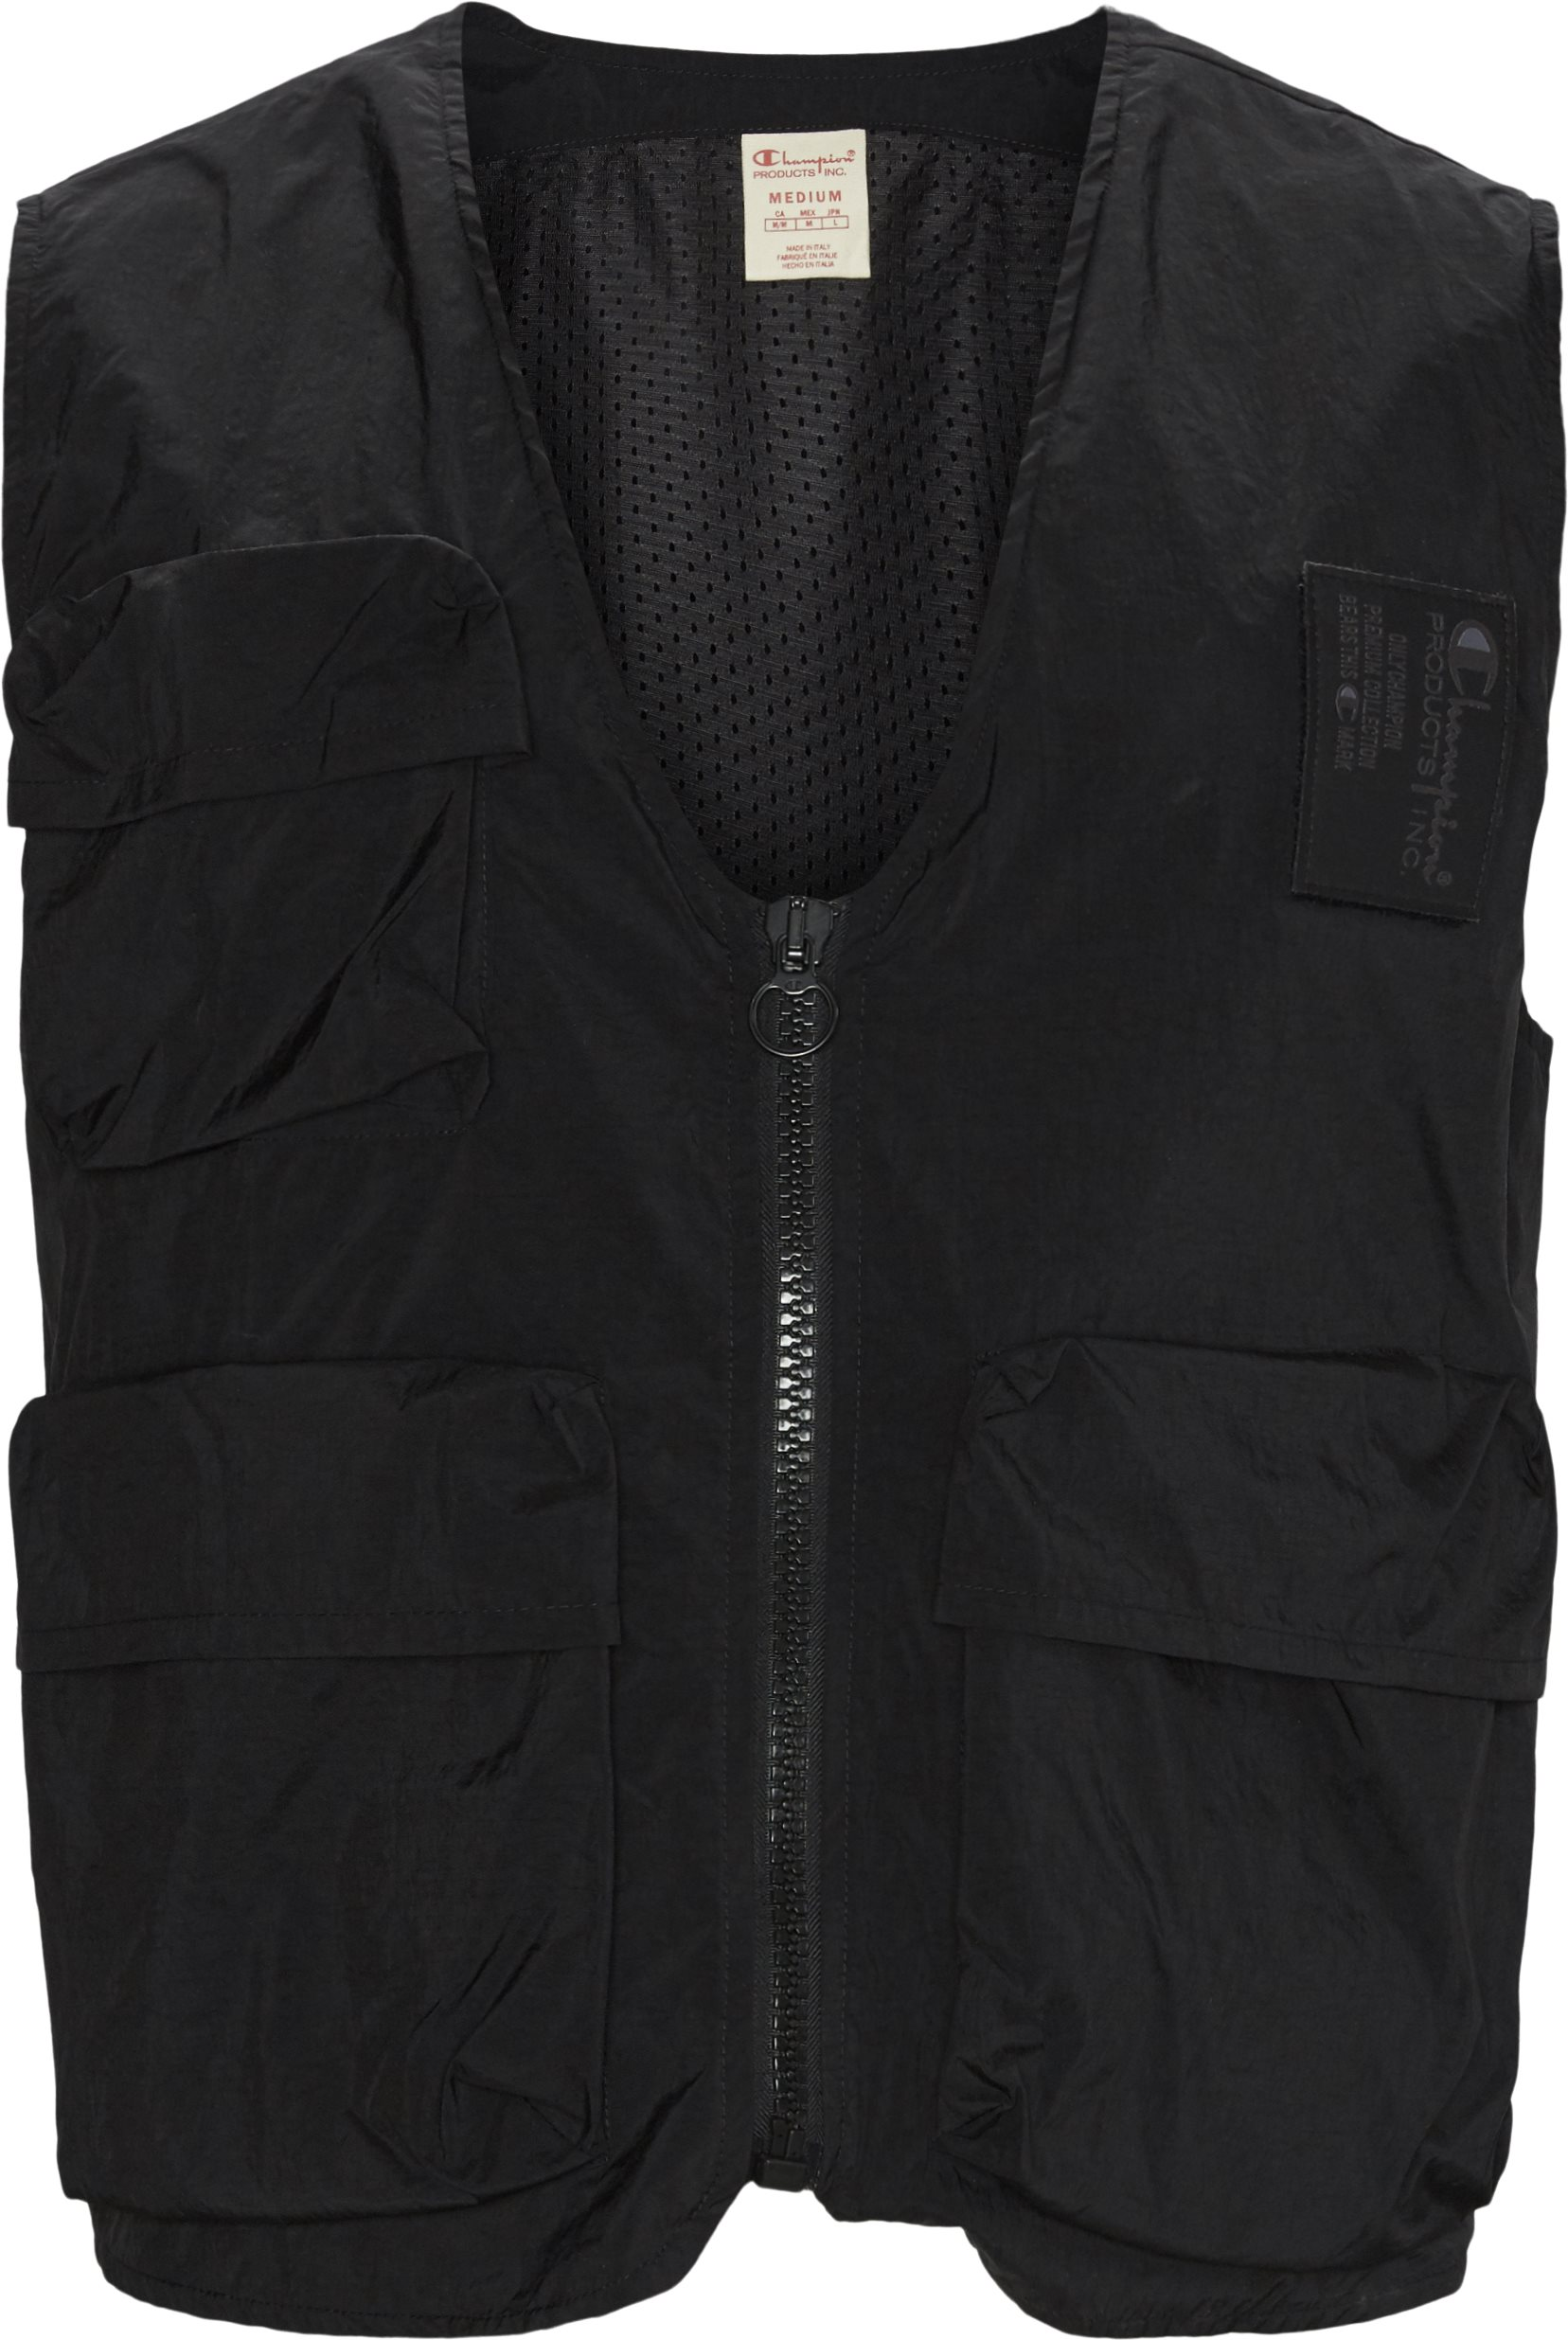 Eco Warrior Vest  - Veste - Regular - Sort